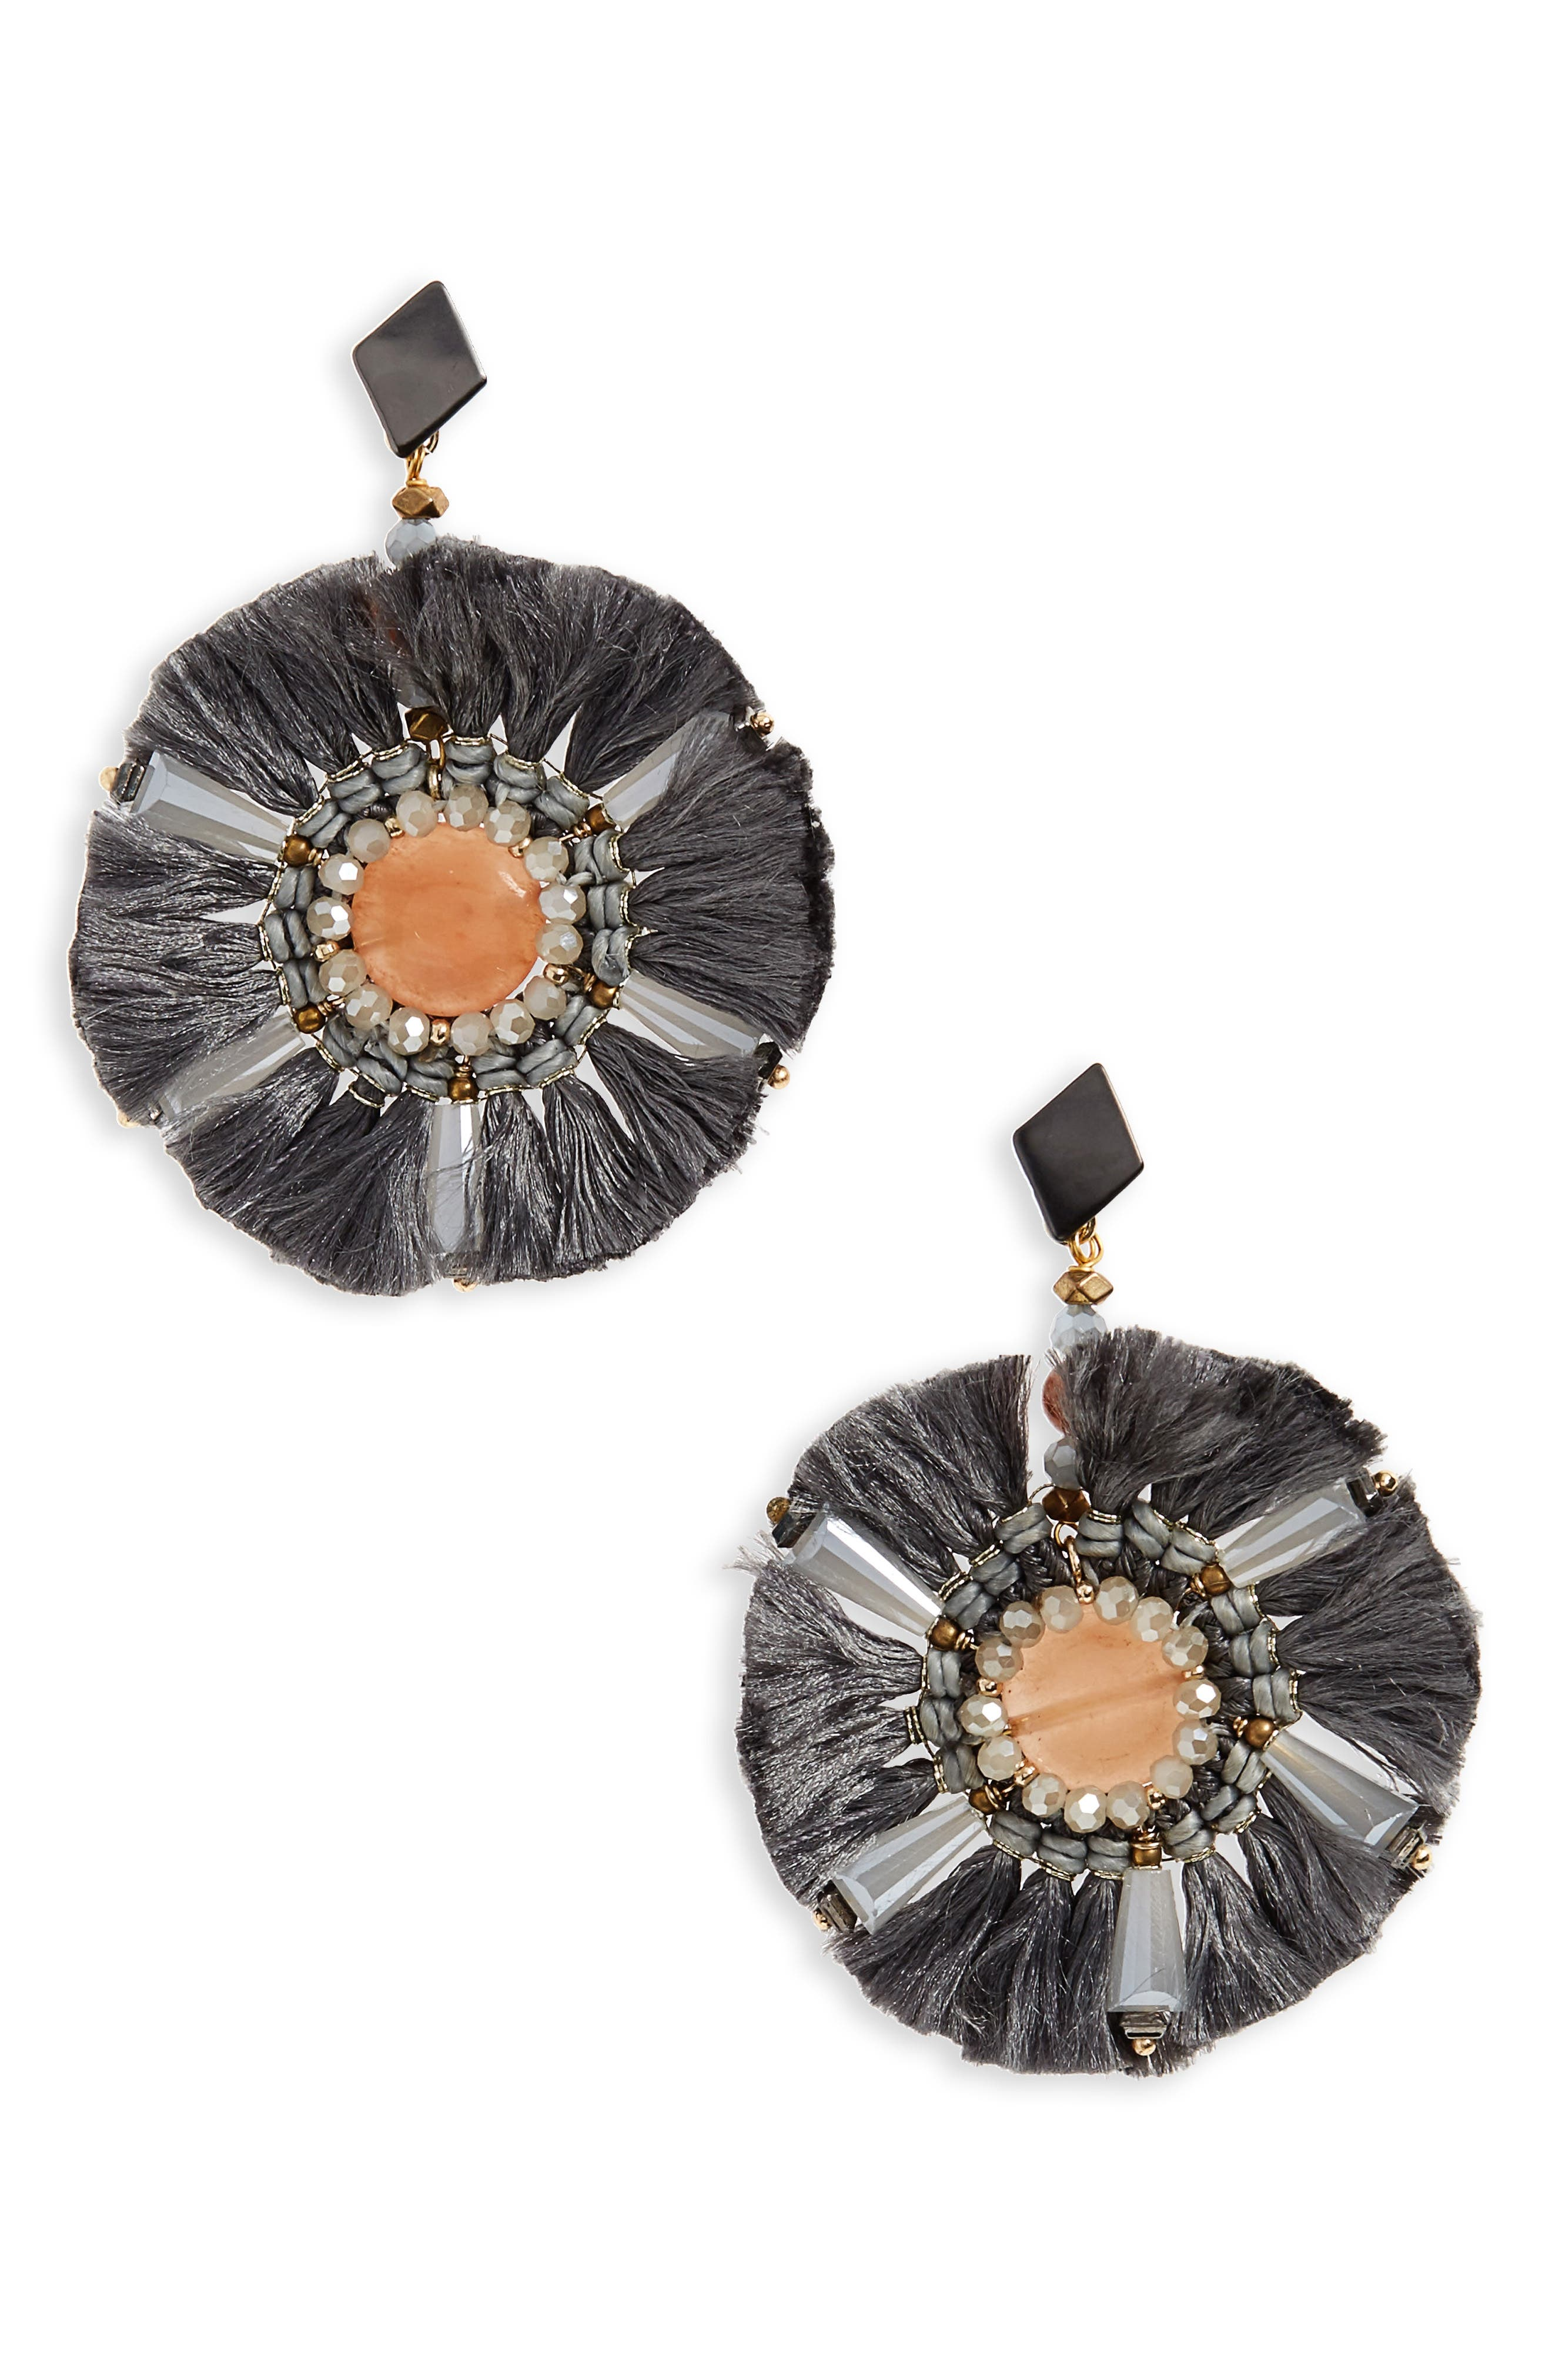 Agate & Fringe Statement Earrings,                         Main,                         color, 020